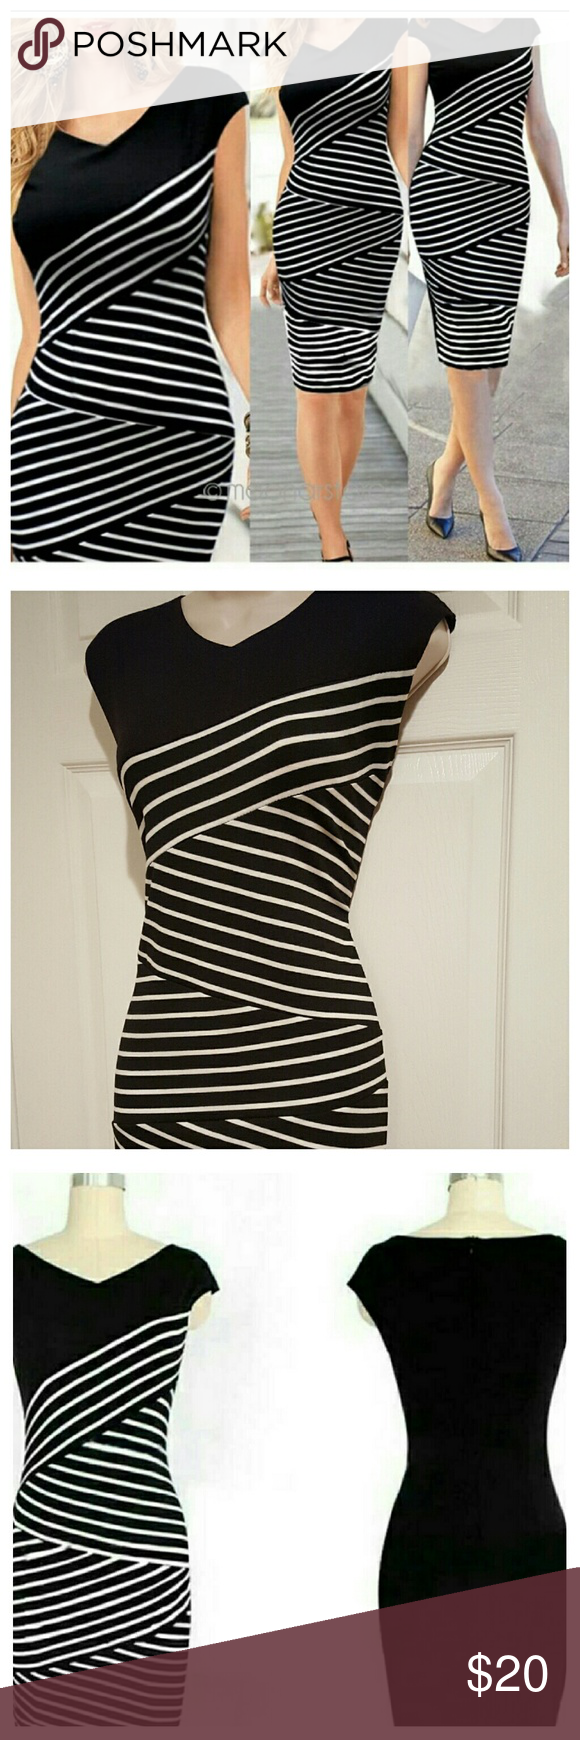 "🎉HP🎉 Black & White Bodycon Pencil Dress New with tags. V-neck striped bodycon, pencil dress. Zips up on top half. 5"" Slit on the back, bottom. Very soft & has great stretch to it so measurements are flexible. Form fitting. Cotton & Spandex blend.  Measurements laying flat-  SMALL: 33"" Relaxed Bust, 15"" Flat Waist, 35"" Hips, 33"" Length  MEDIUM: 34"" Relaxed Bust, 15.5"" Flat Waist, 36"" Hips, 34"" Length Dresses"